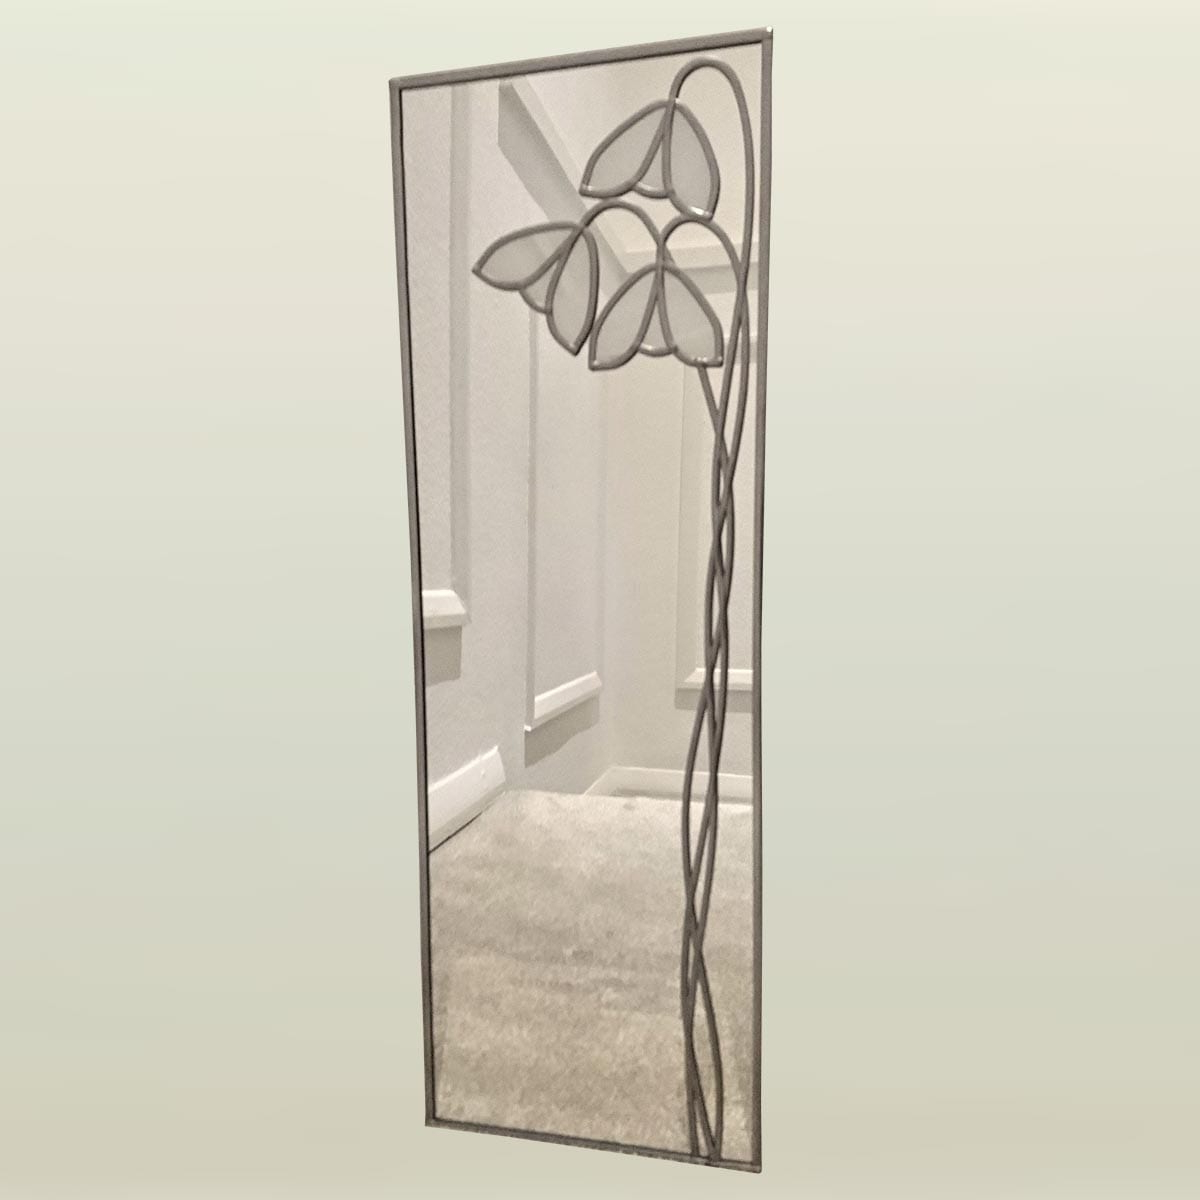 2019 Deco Wall Mirrors Inside Deco Snowdrop Wall Mirror 20X61Cm (8X24In) (Gallery 17 of 20)